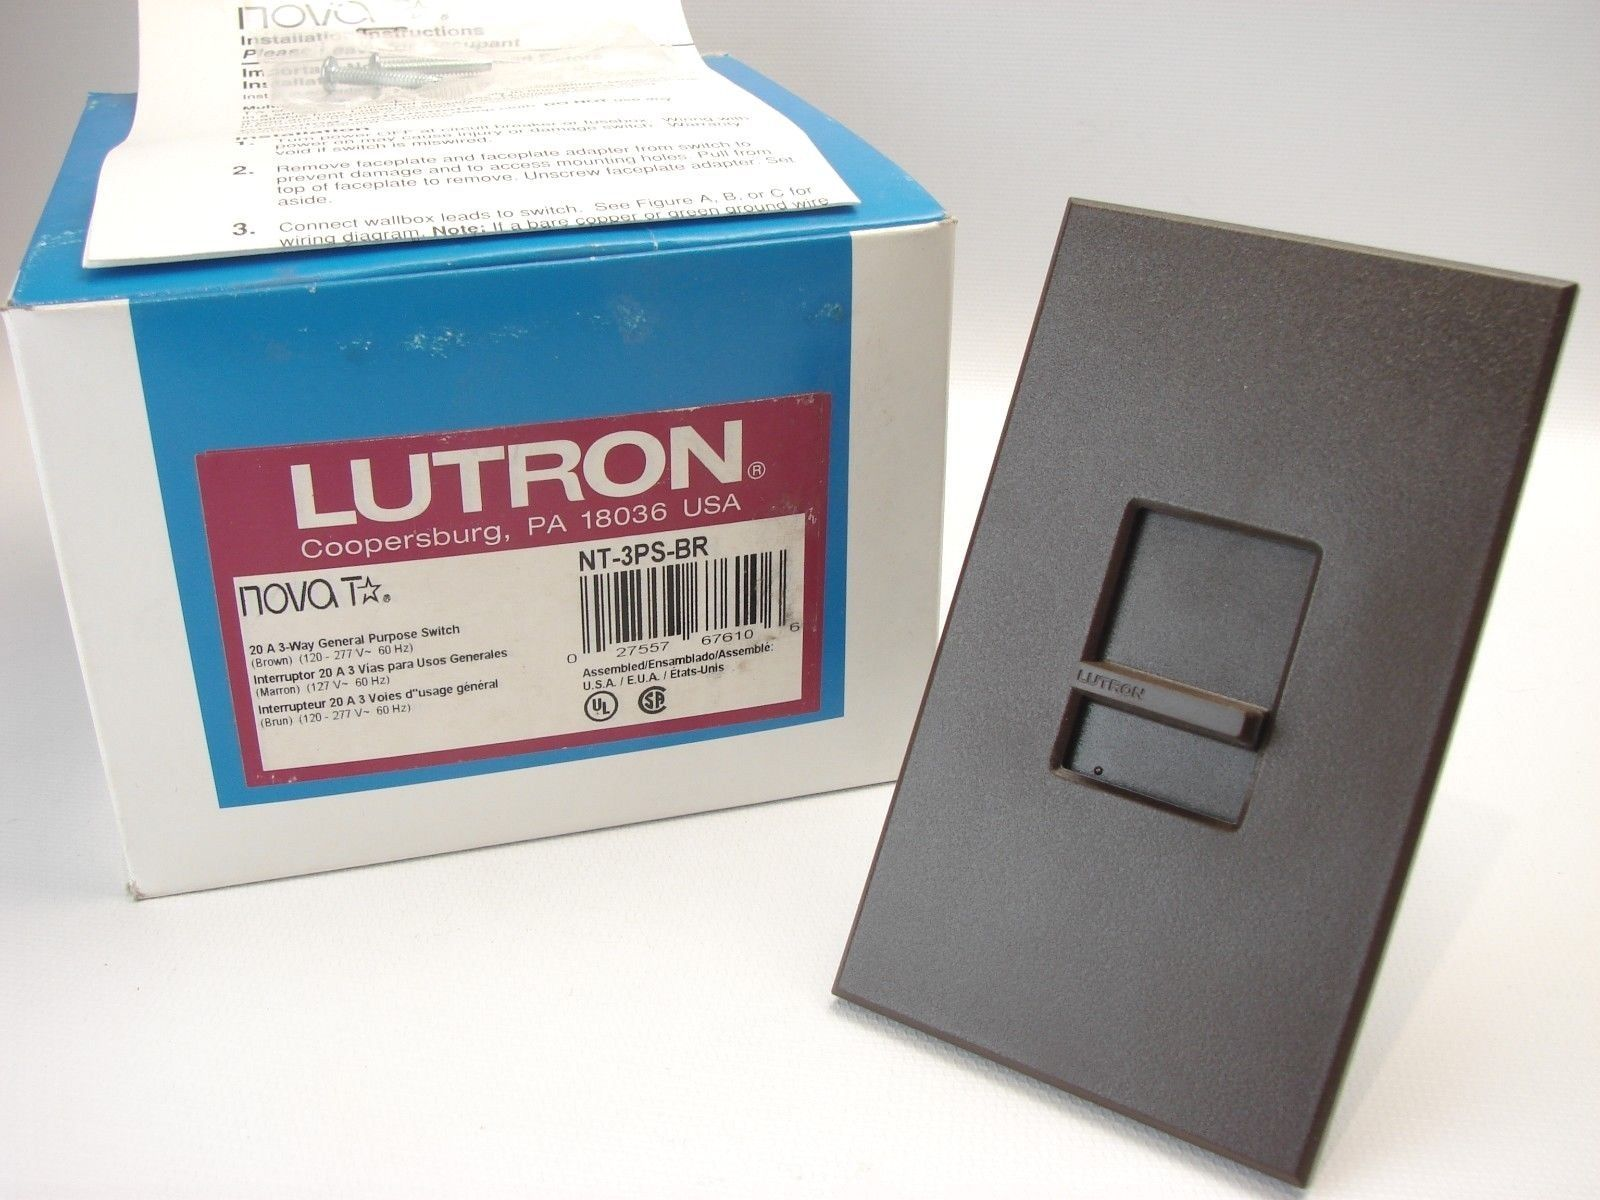 New Lutron Nt 3ps Br Nova T 3 Way Switch And Similar Items Wiring Diagram 110 Volt S L1600